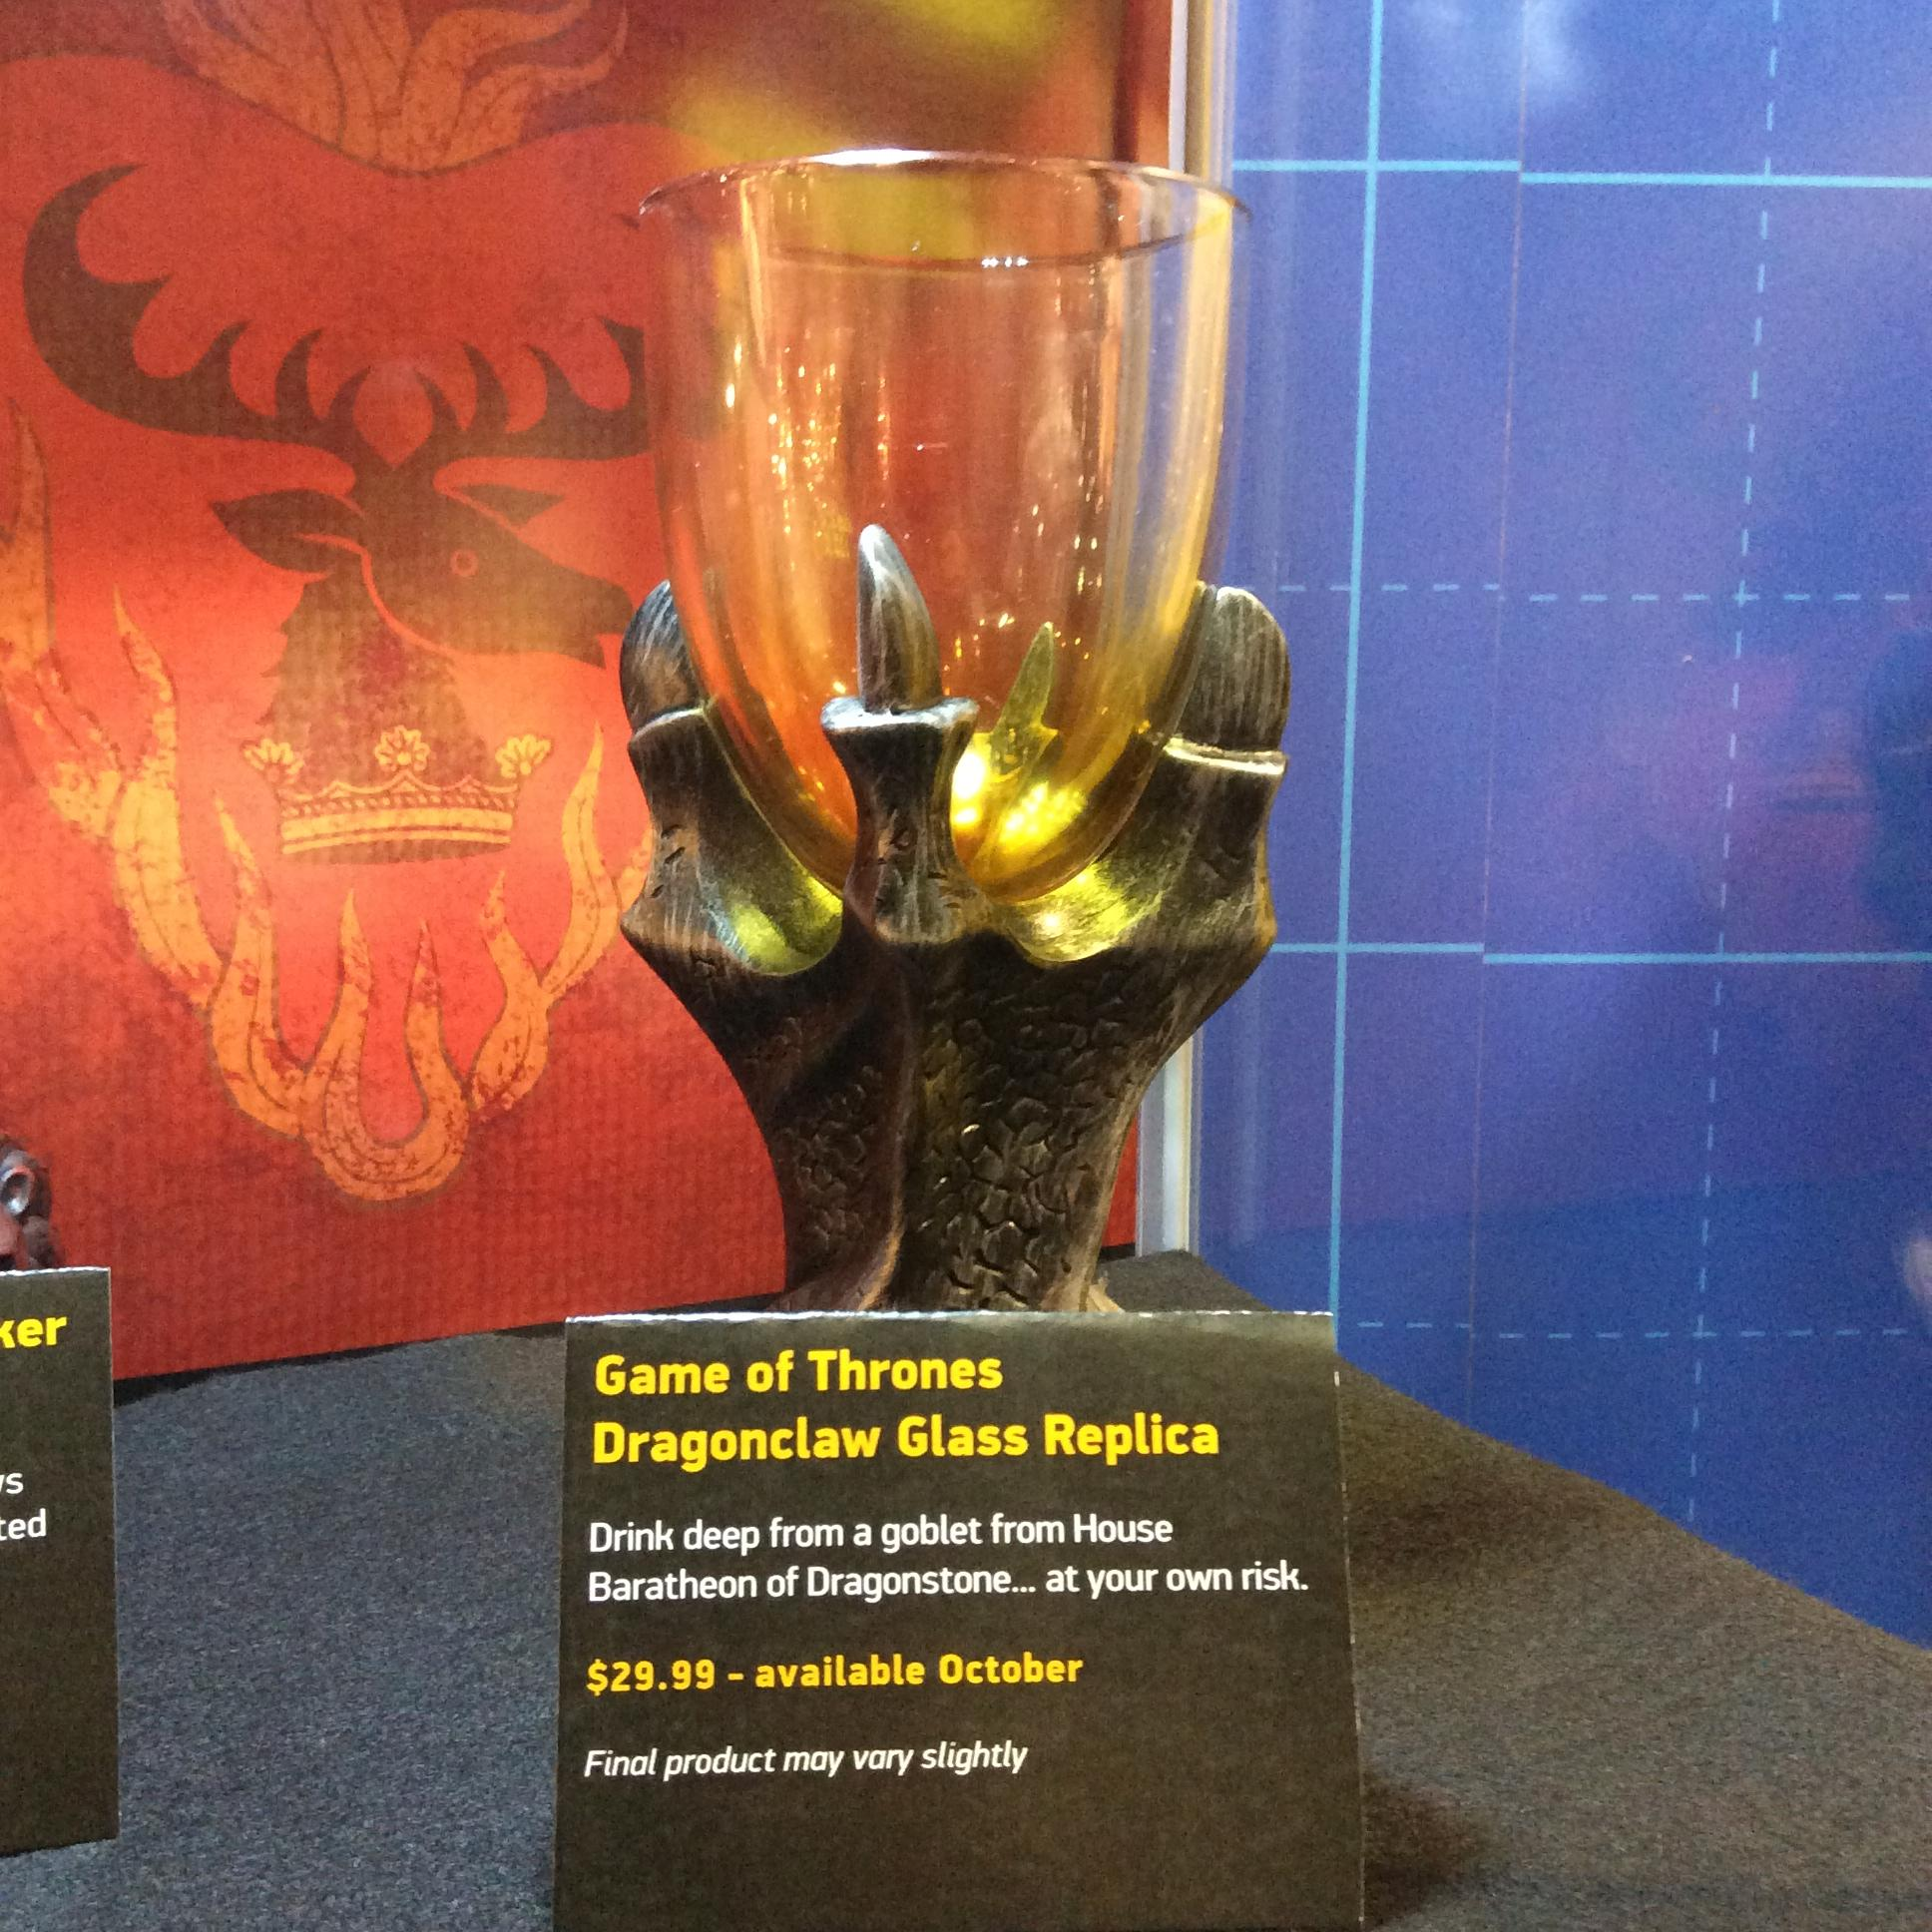 Game of Thrones Chalice Game of Thrones on Twitter